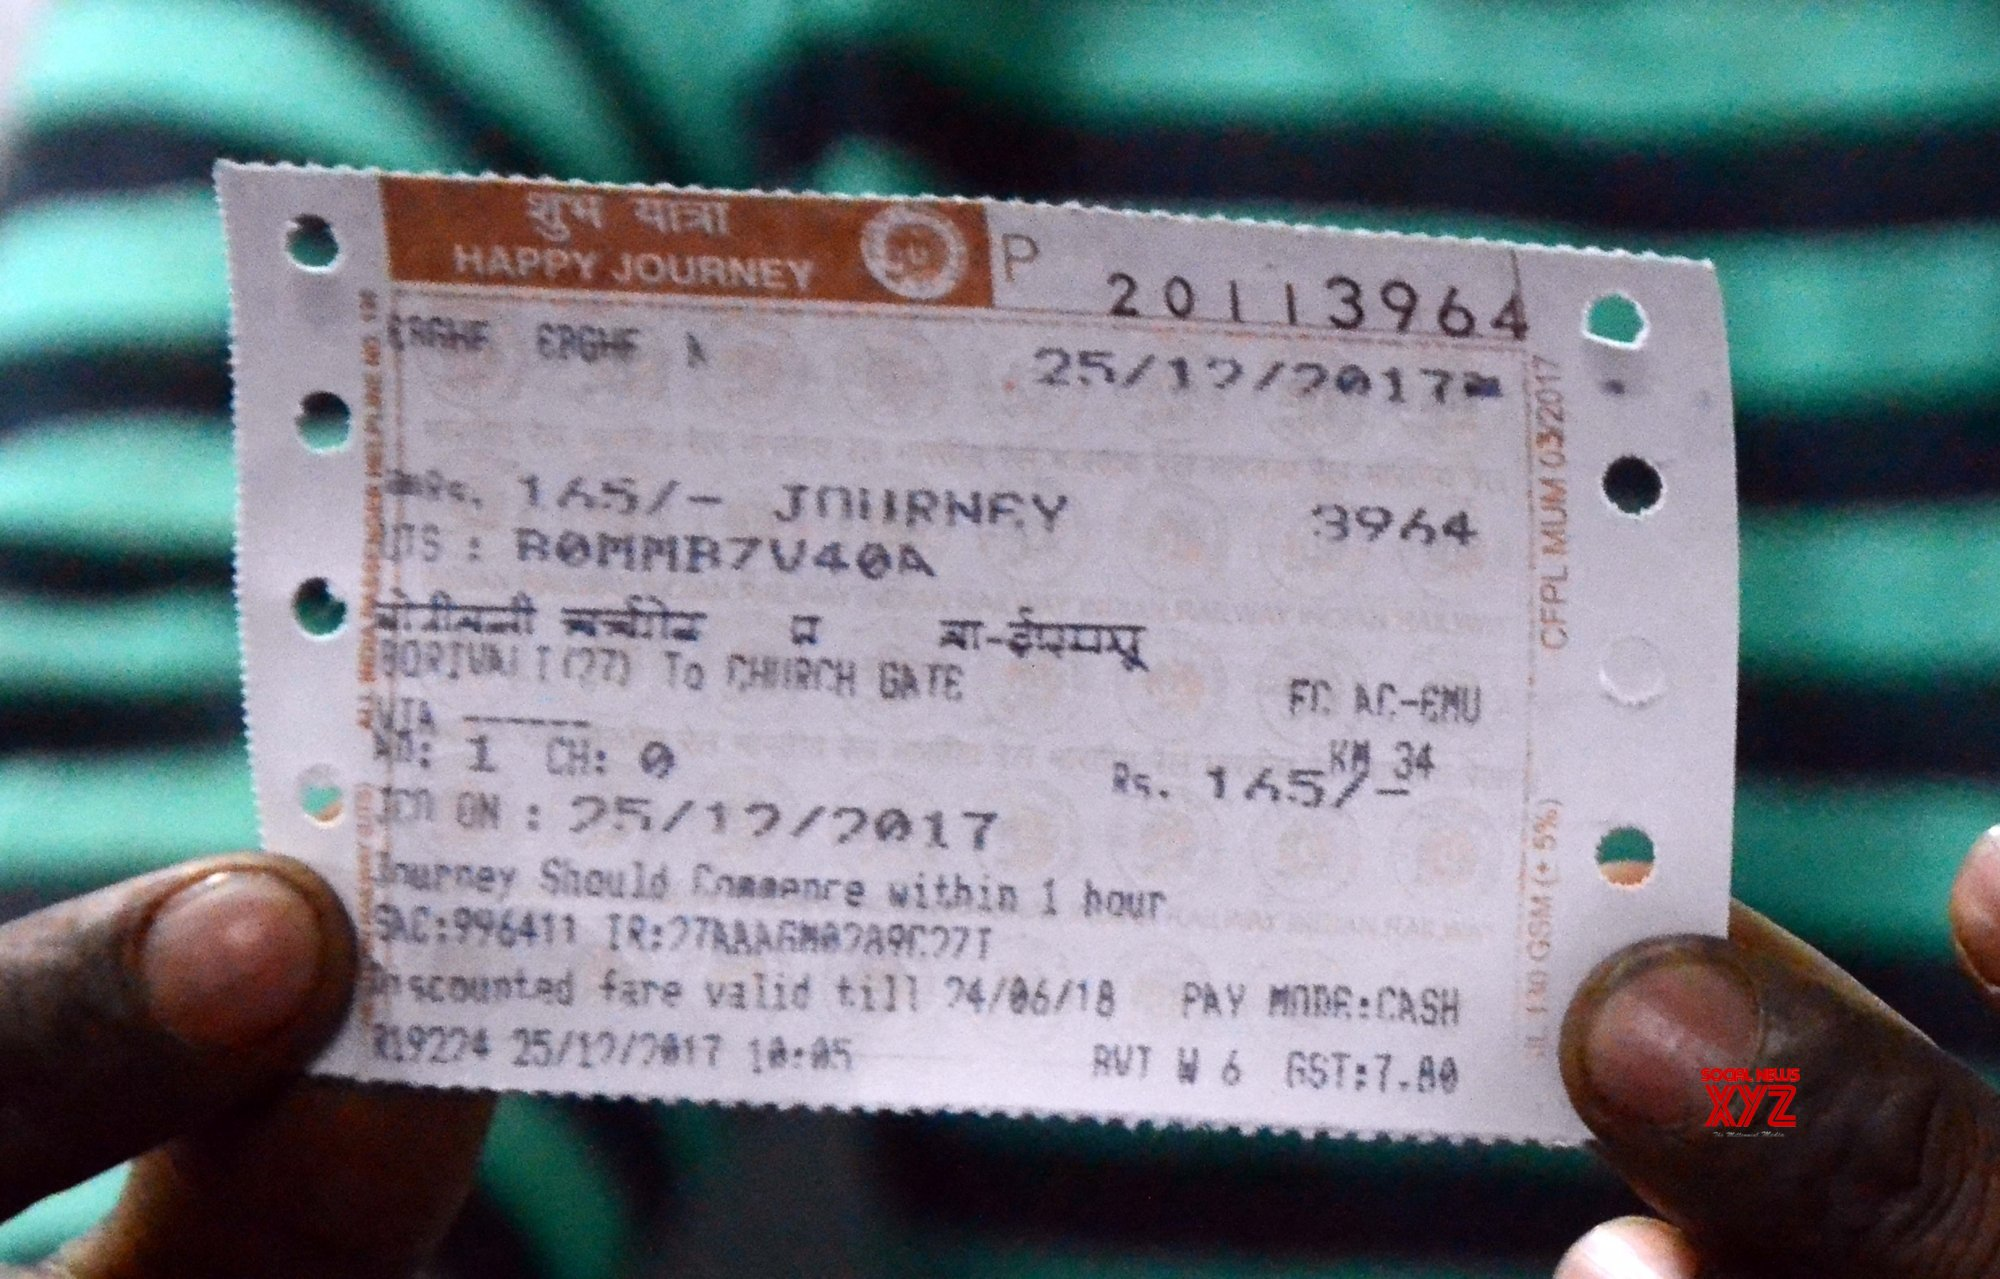 Railways suspends 4 for issuing tickets with Modi image